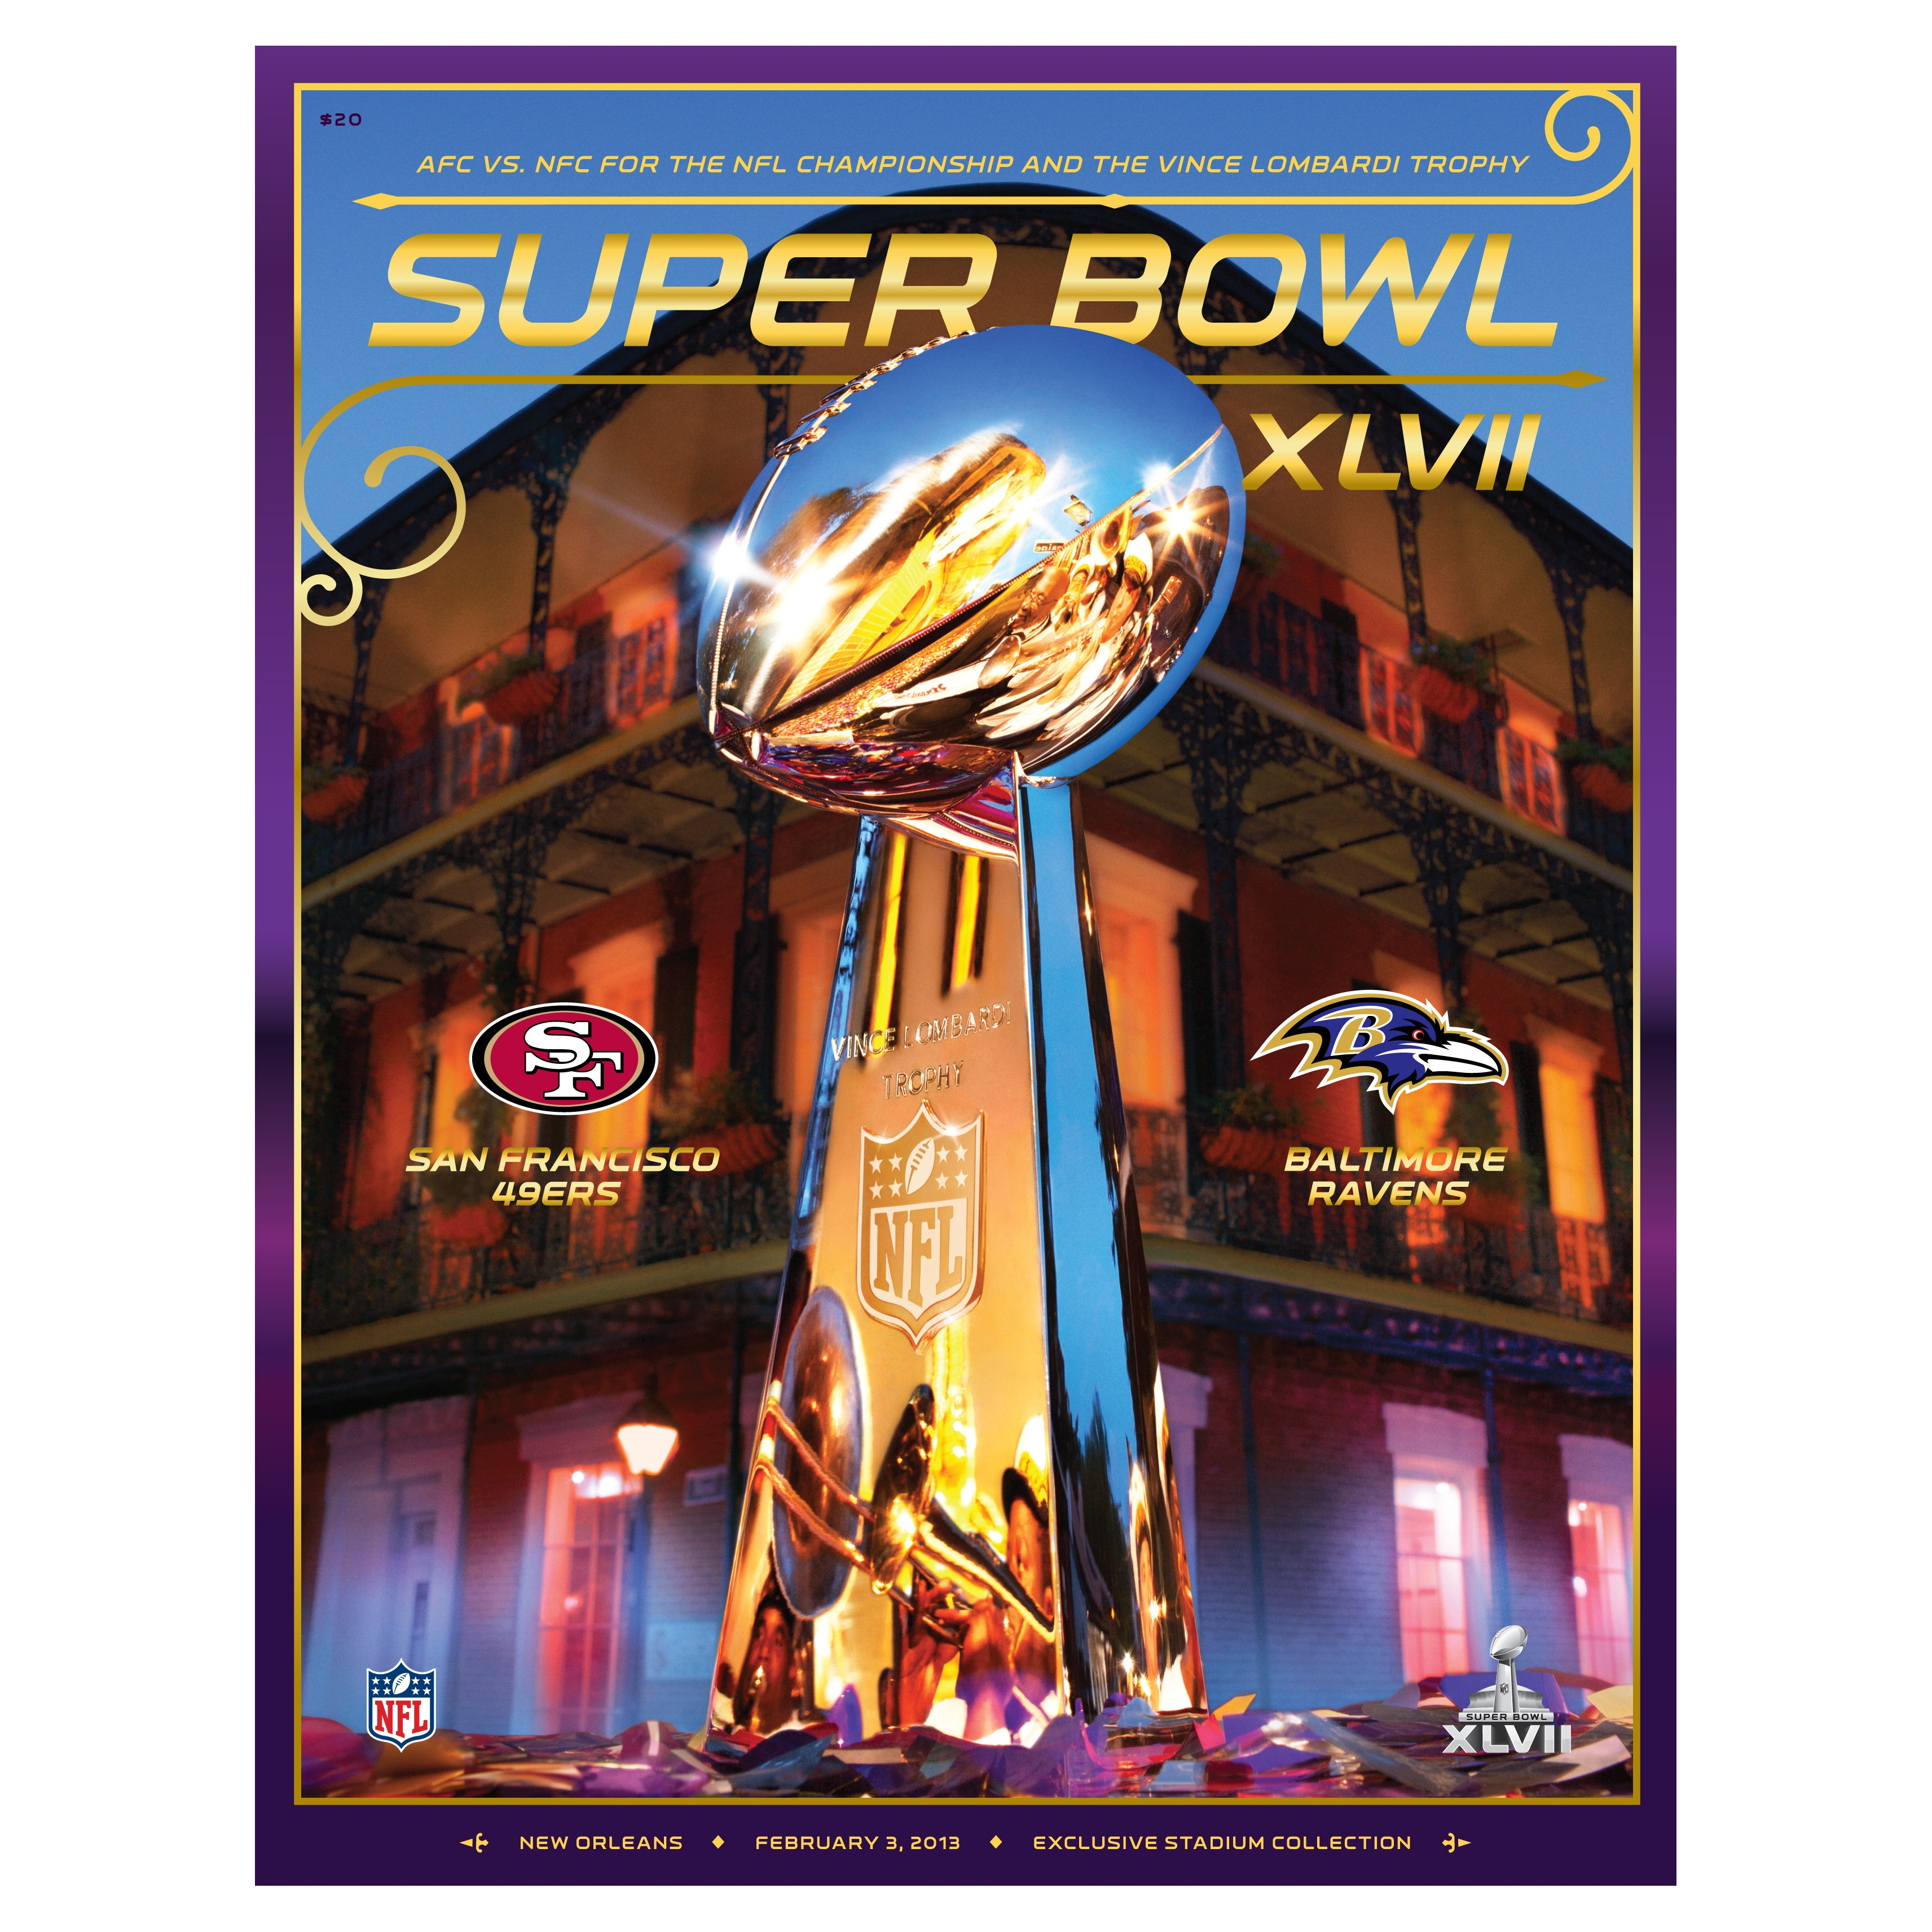 The Official Super Bowl XLVII Game Programme